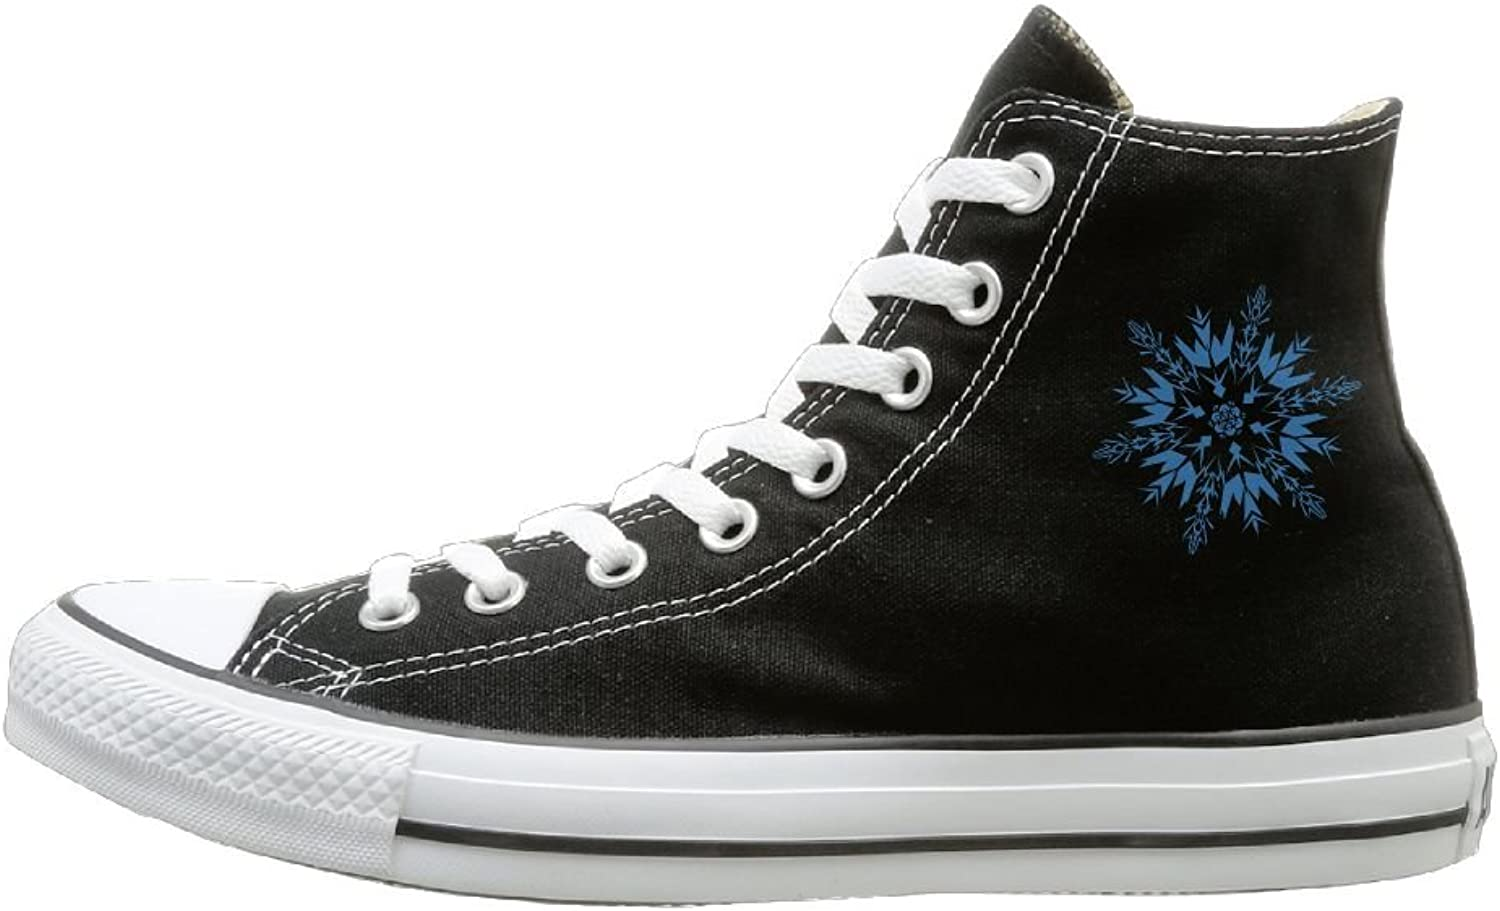 Classic High-Top Canvas Sneakers bluee Snowflake Casual Sneakers Canvas shoes With Rubber Sole